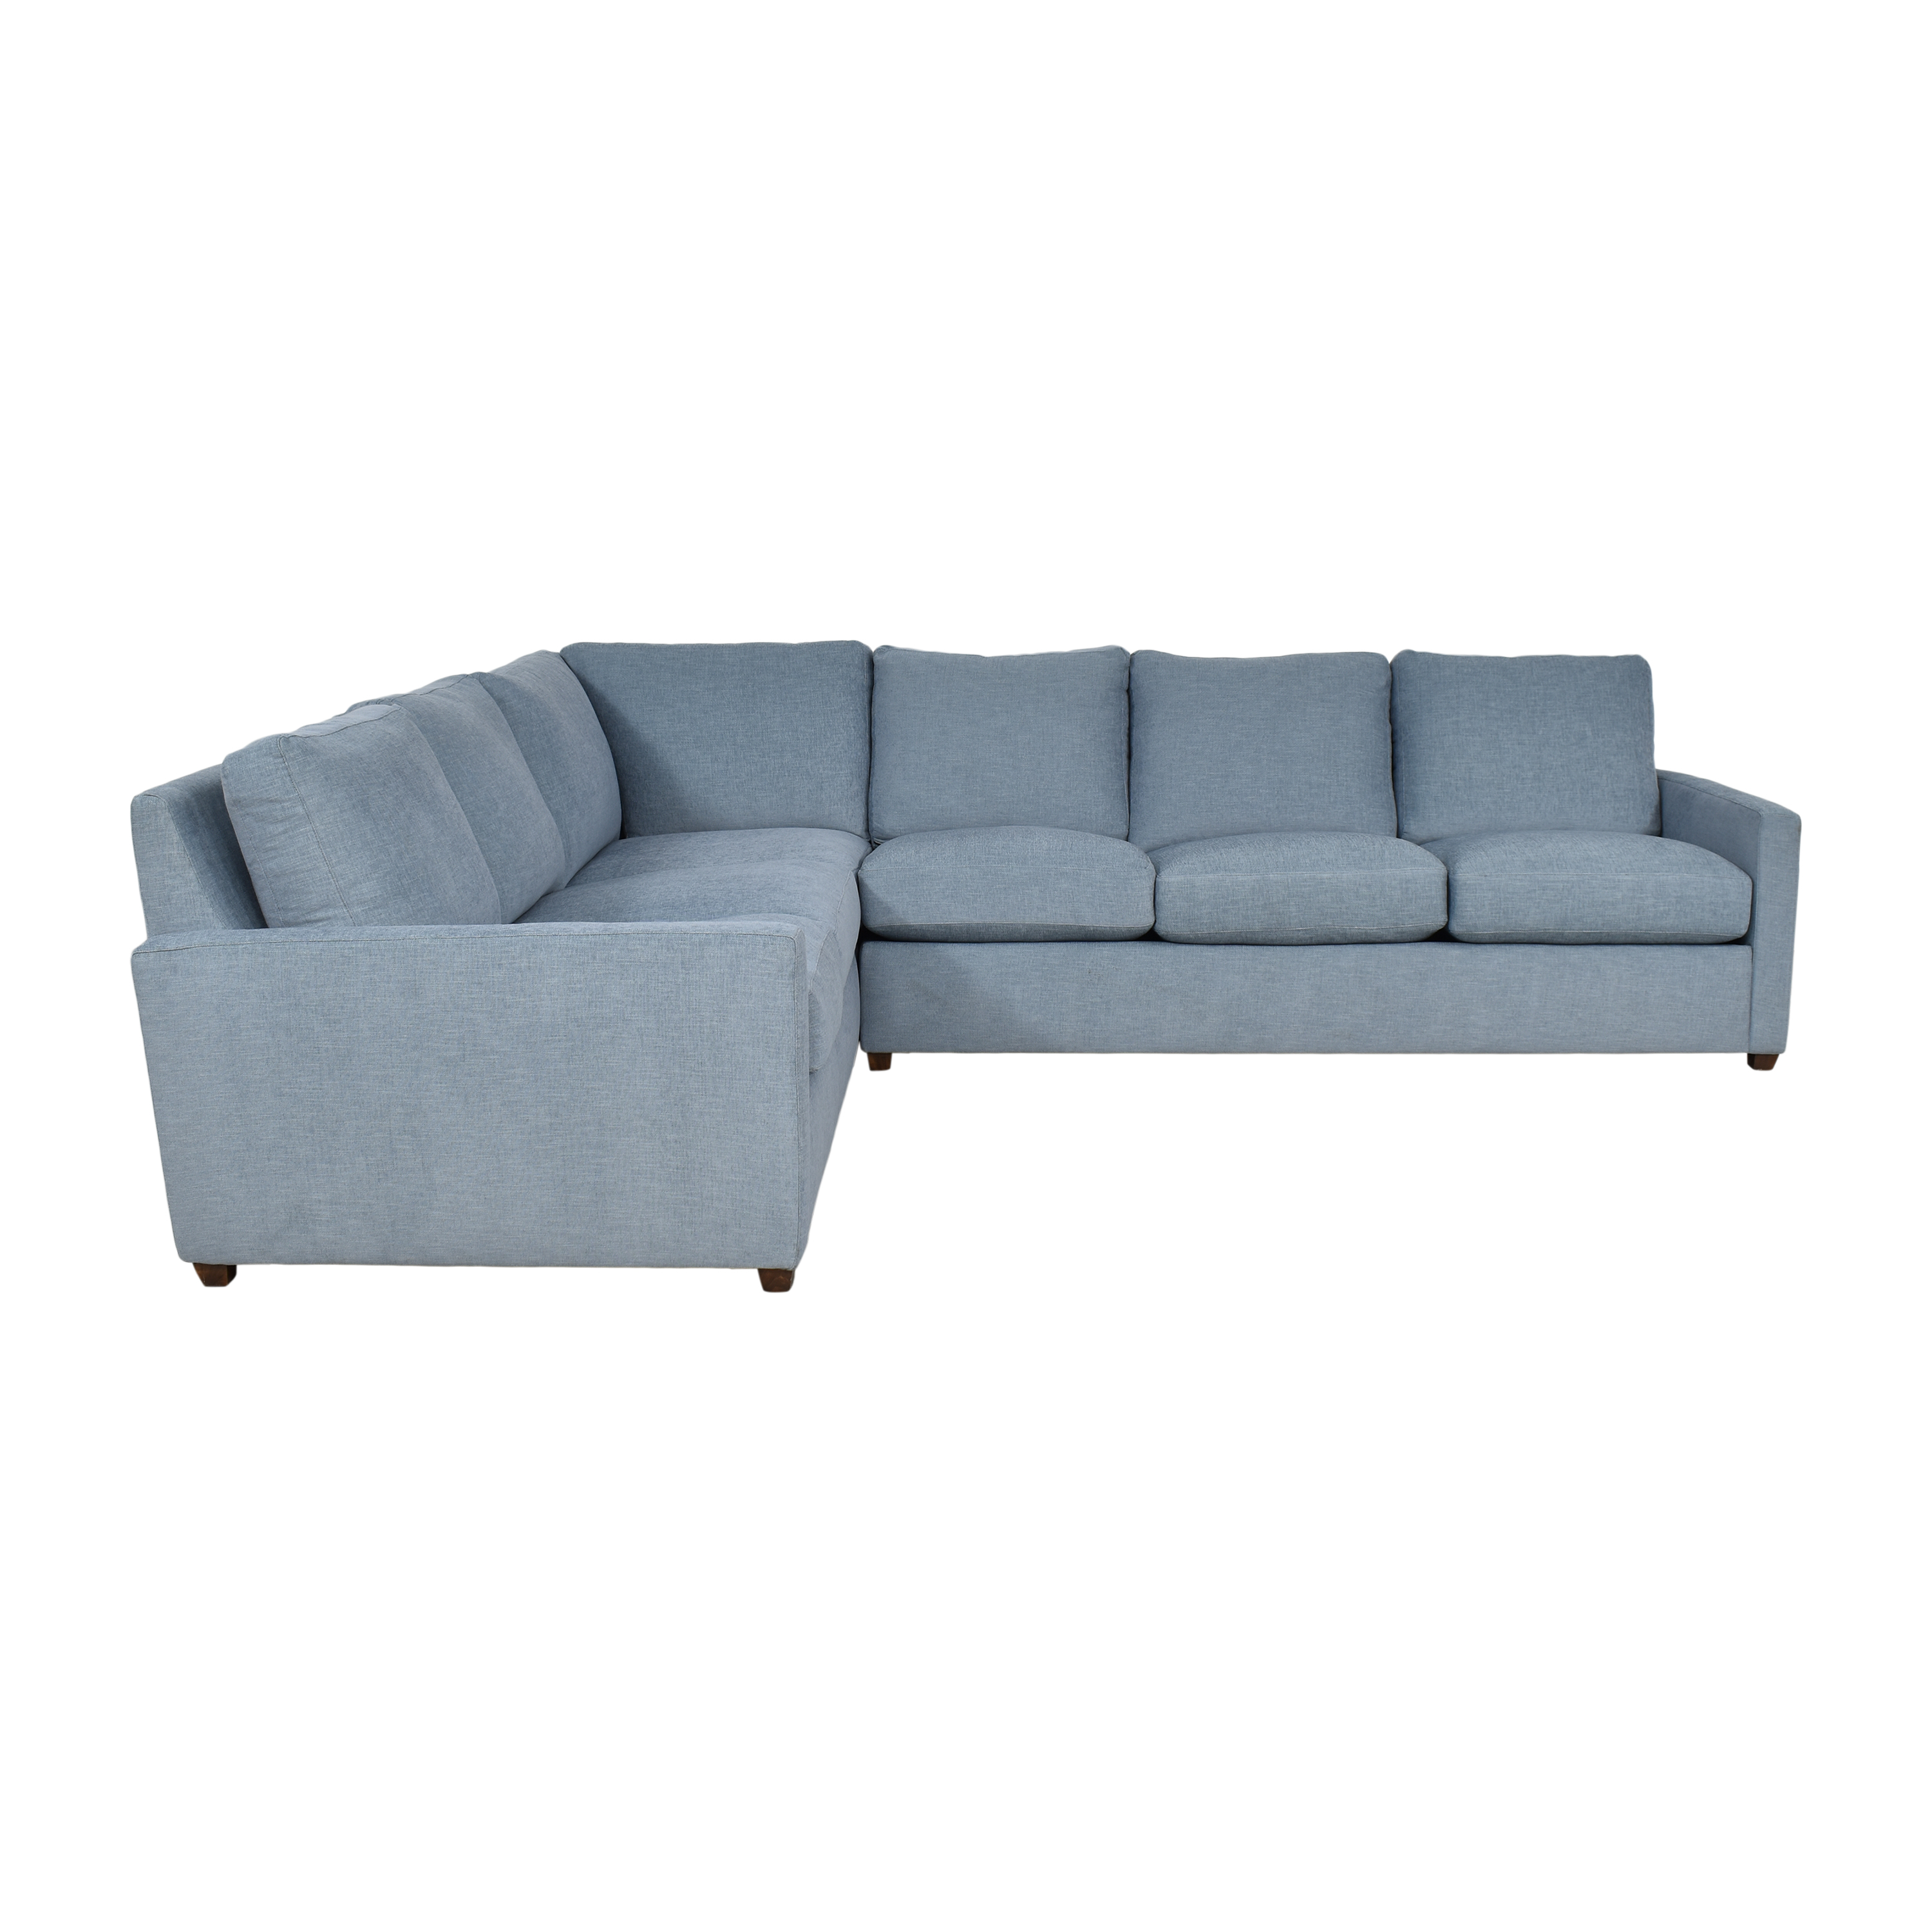 BenchMade Modern BenchMade Modern Couch Potato Lite Sectional pa